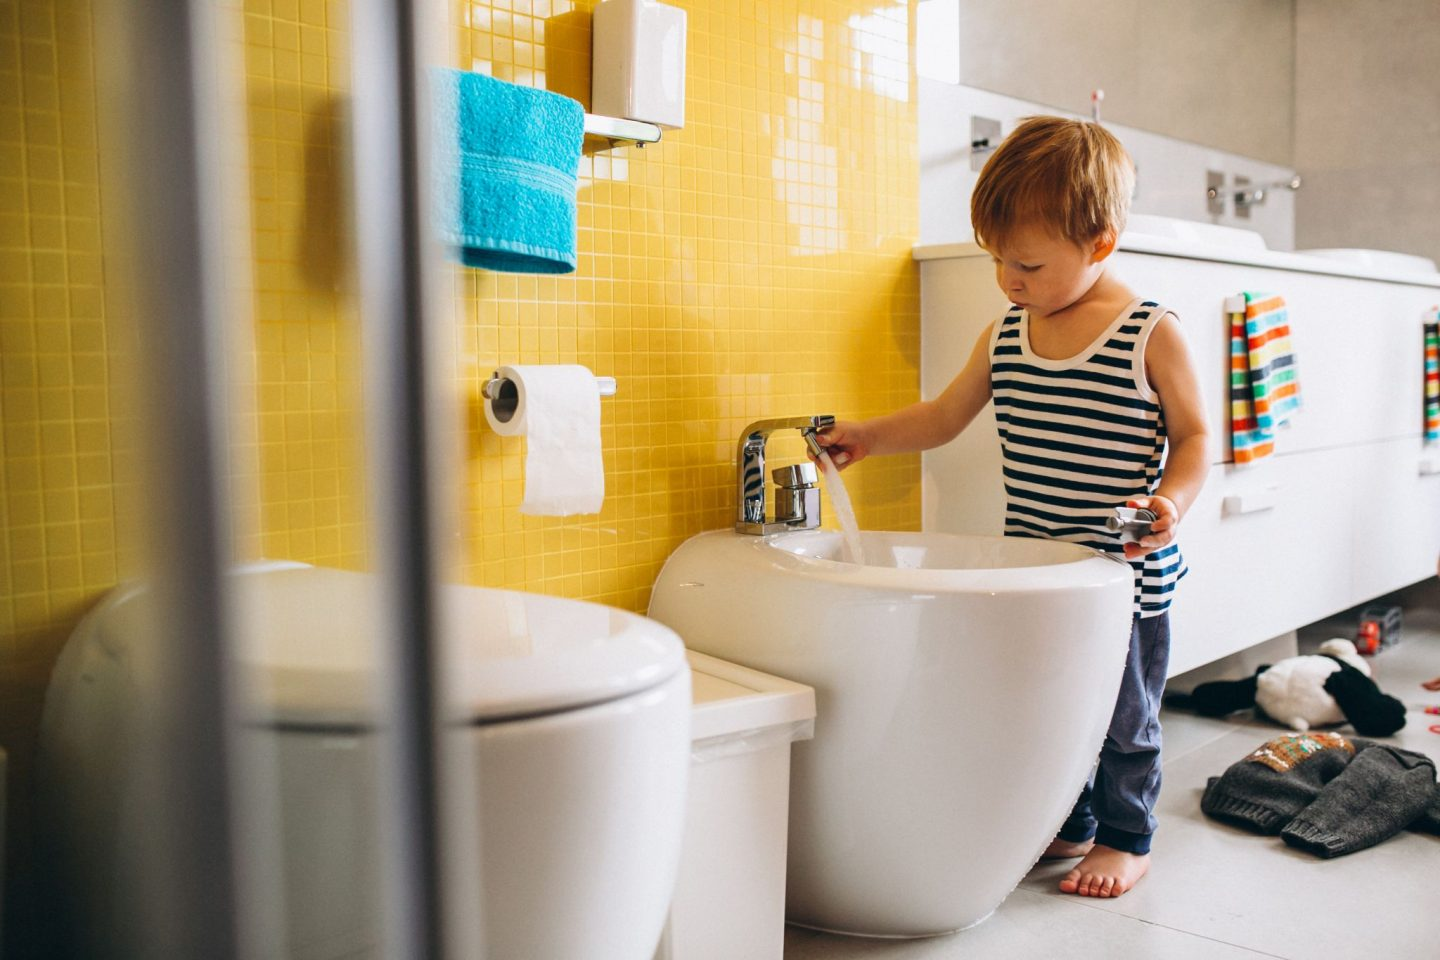 HOW TO MAKE YOUR BATHROOM MORE KID-FRIENDLY